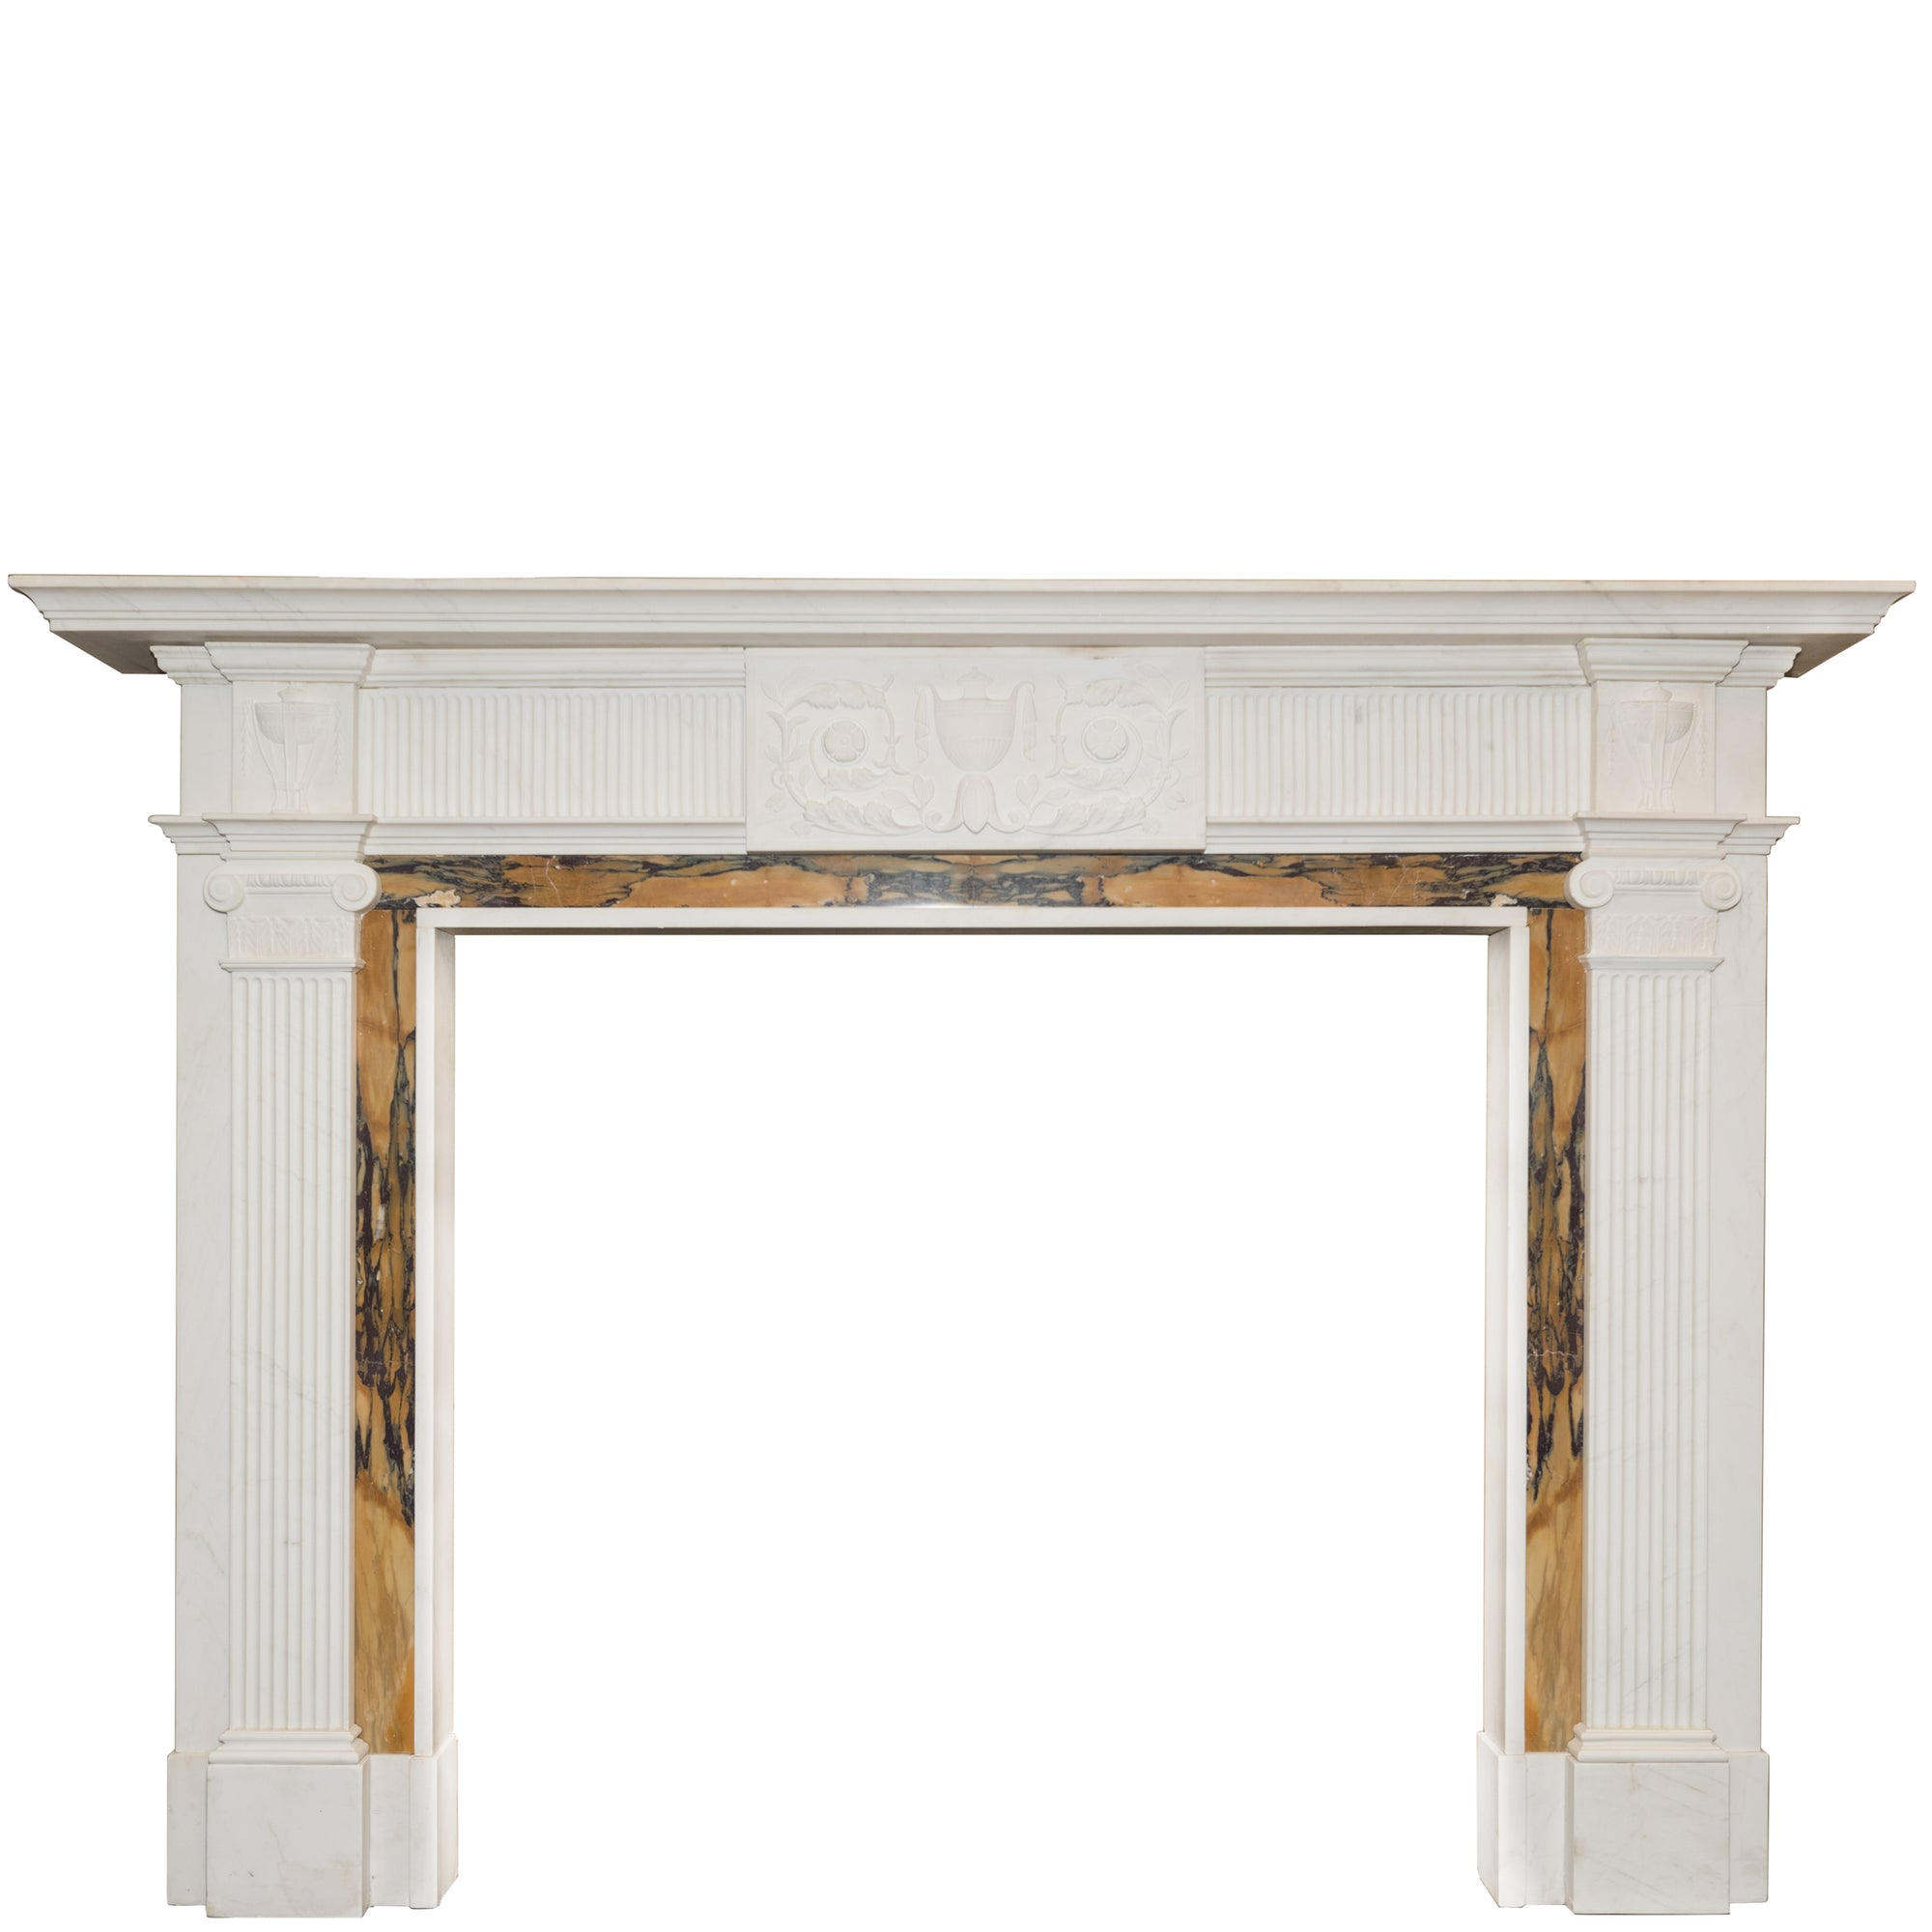 Georgian Style Statutory & Sienna Marble Fireplace Surround - architectural-forum